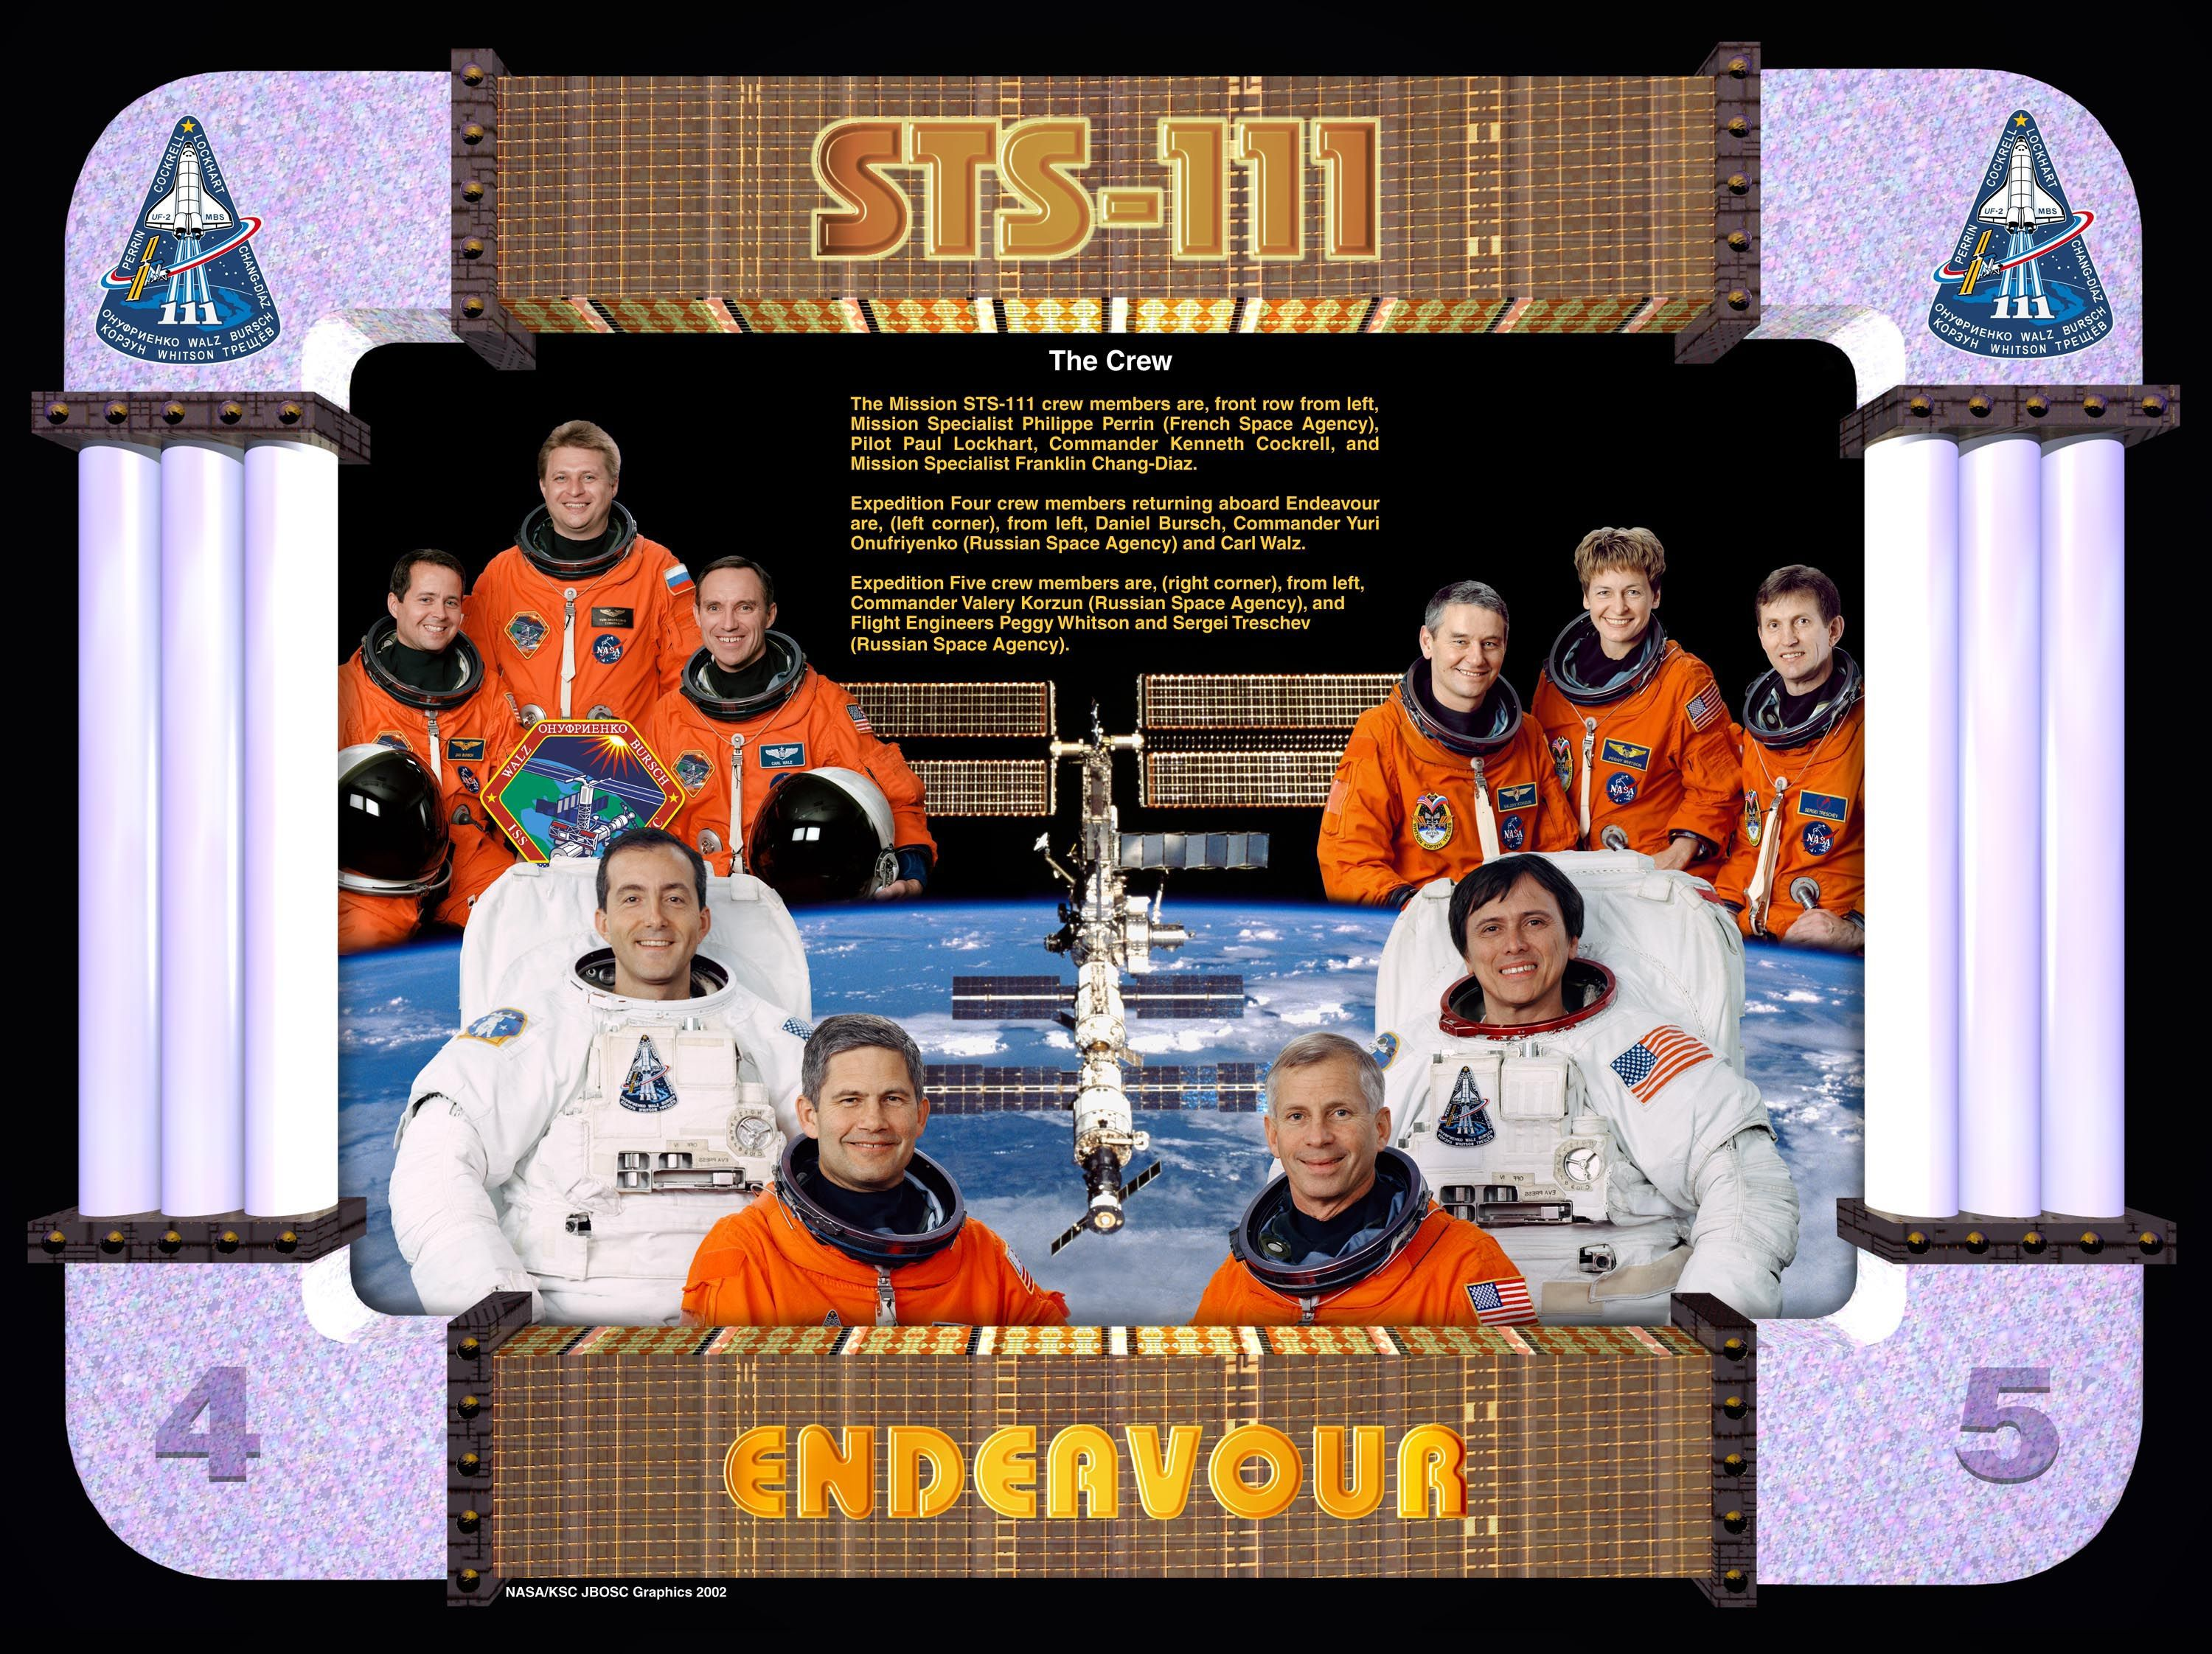 STS-111 ENDEAVOUR Crew poster ...